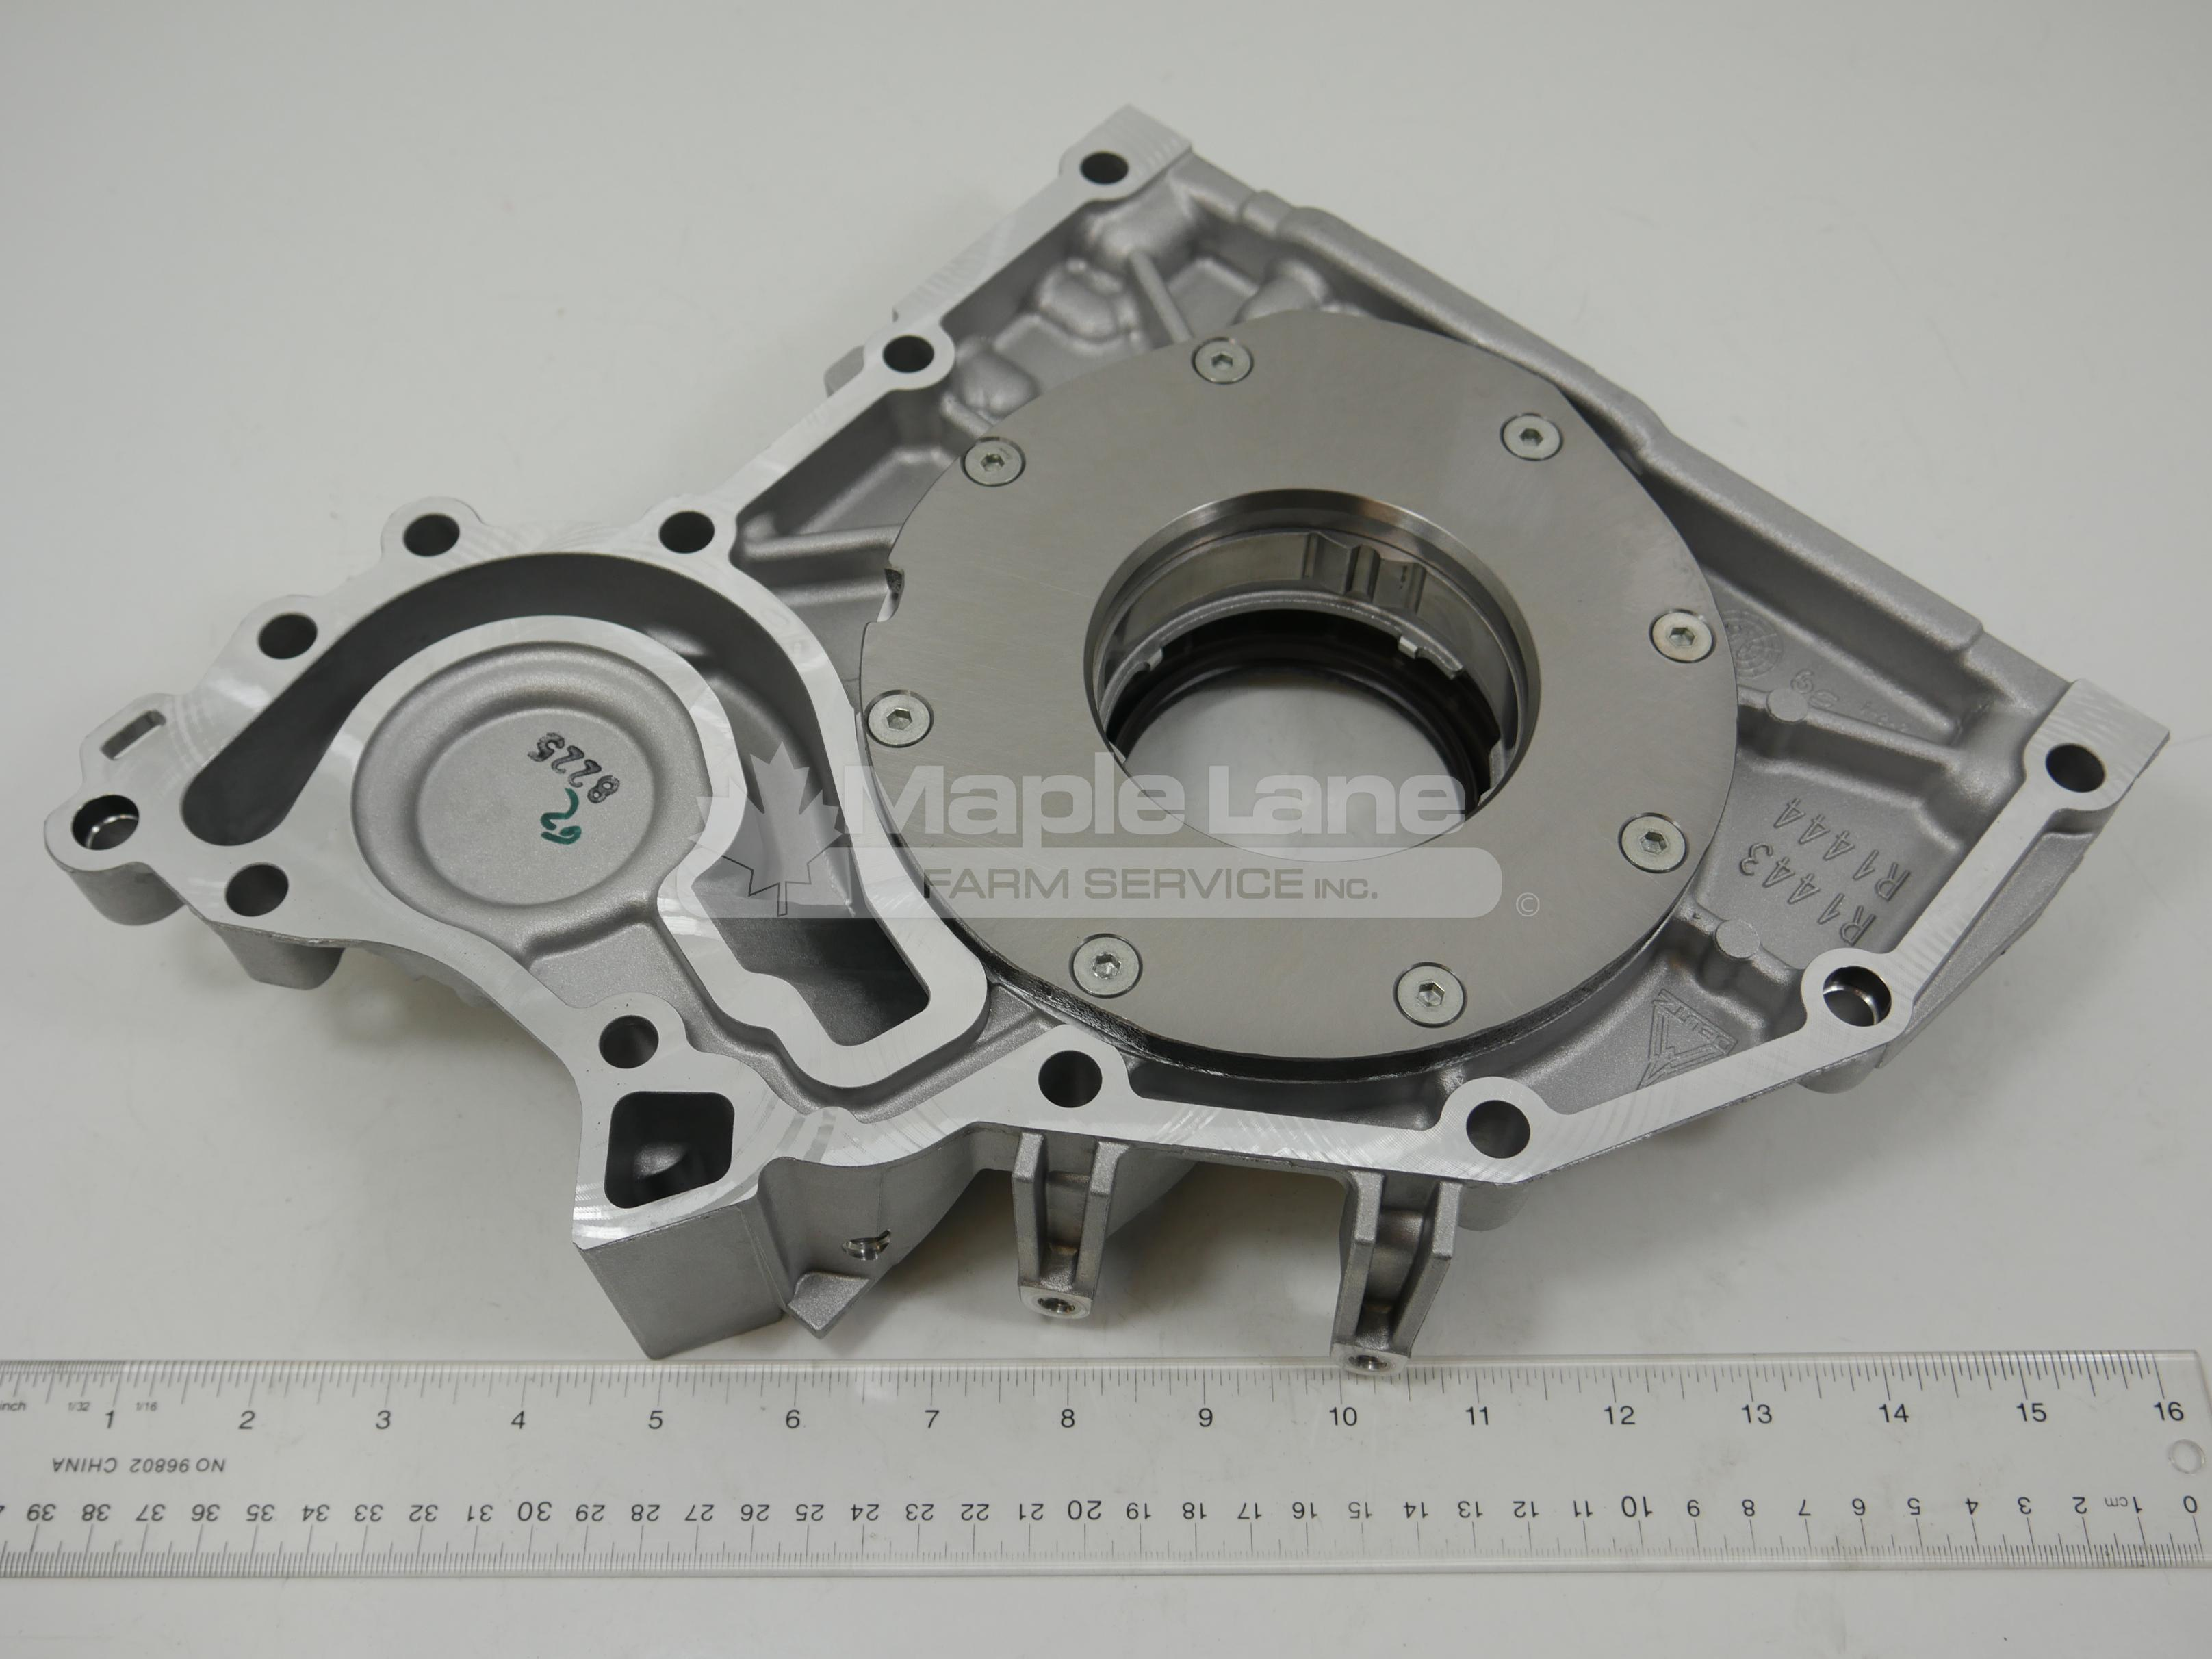 72631202 End Cover